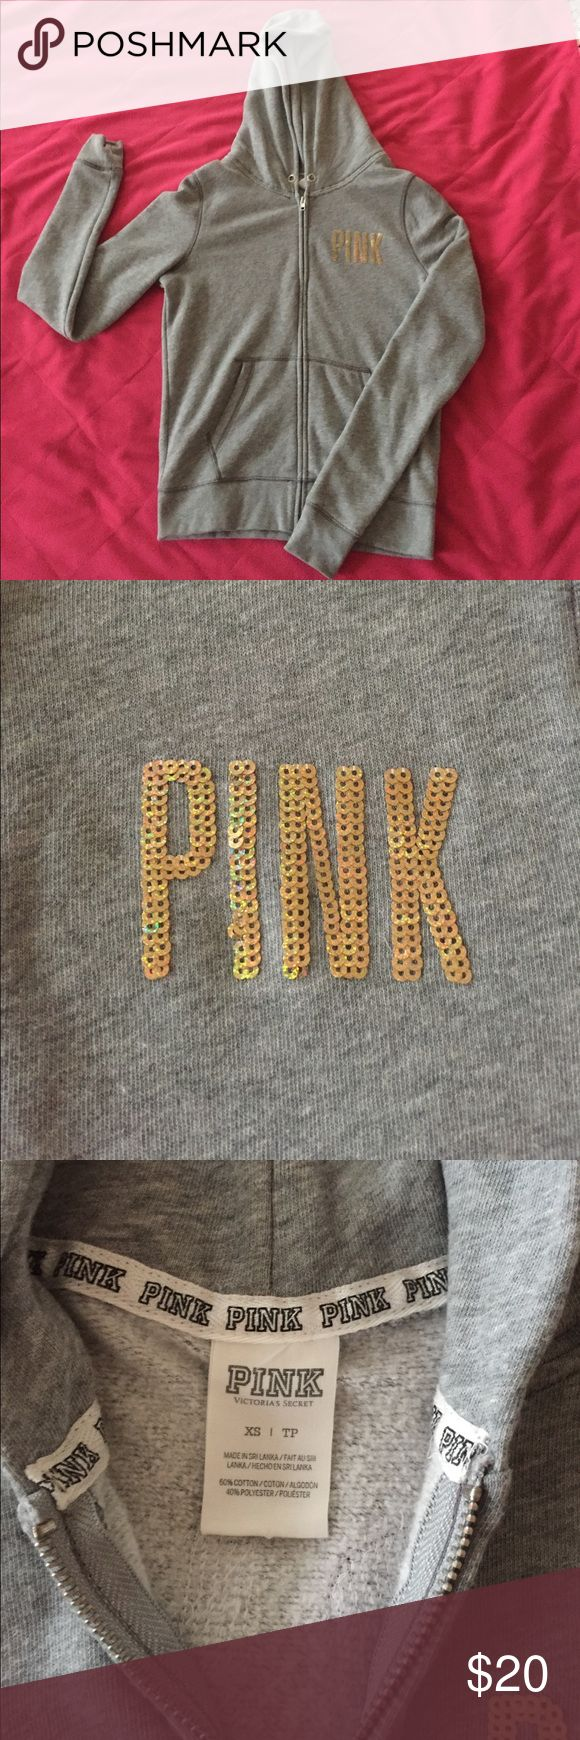 Victoria Secret Pink zip up hoodie Gray VS PINK zip up hoodie. Different shades of gold sequins on front and back. Great condition. PINK Victoria's Secret Tops Sweatshirts & Hoodies